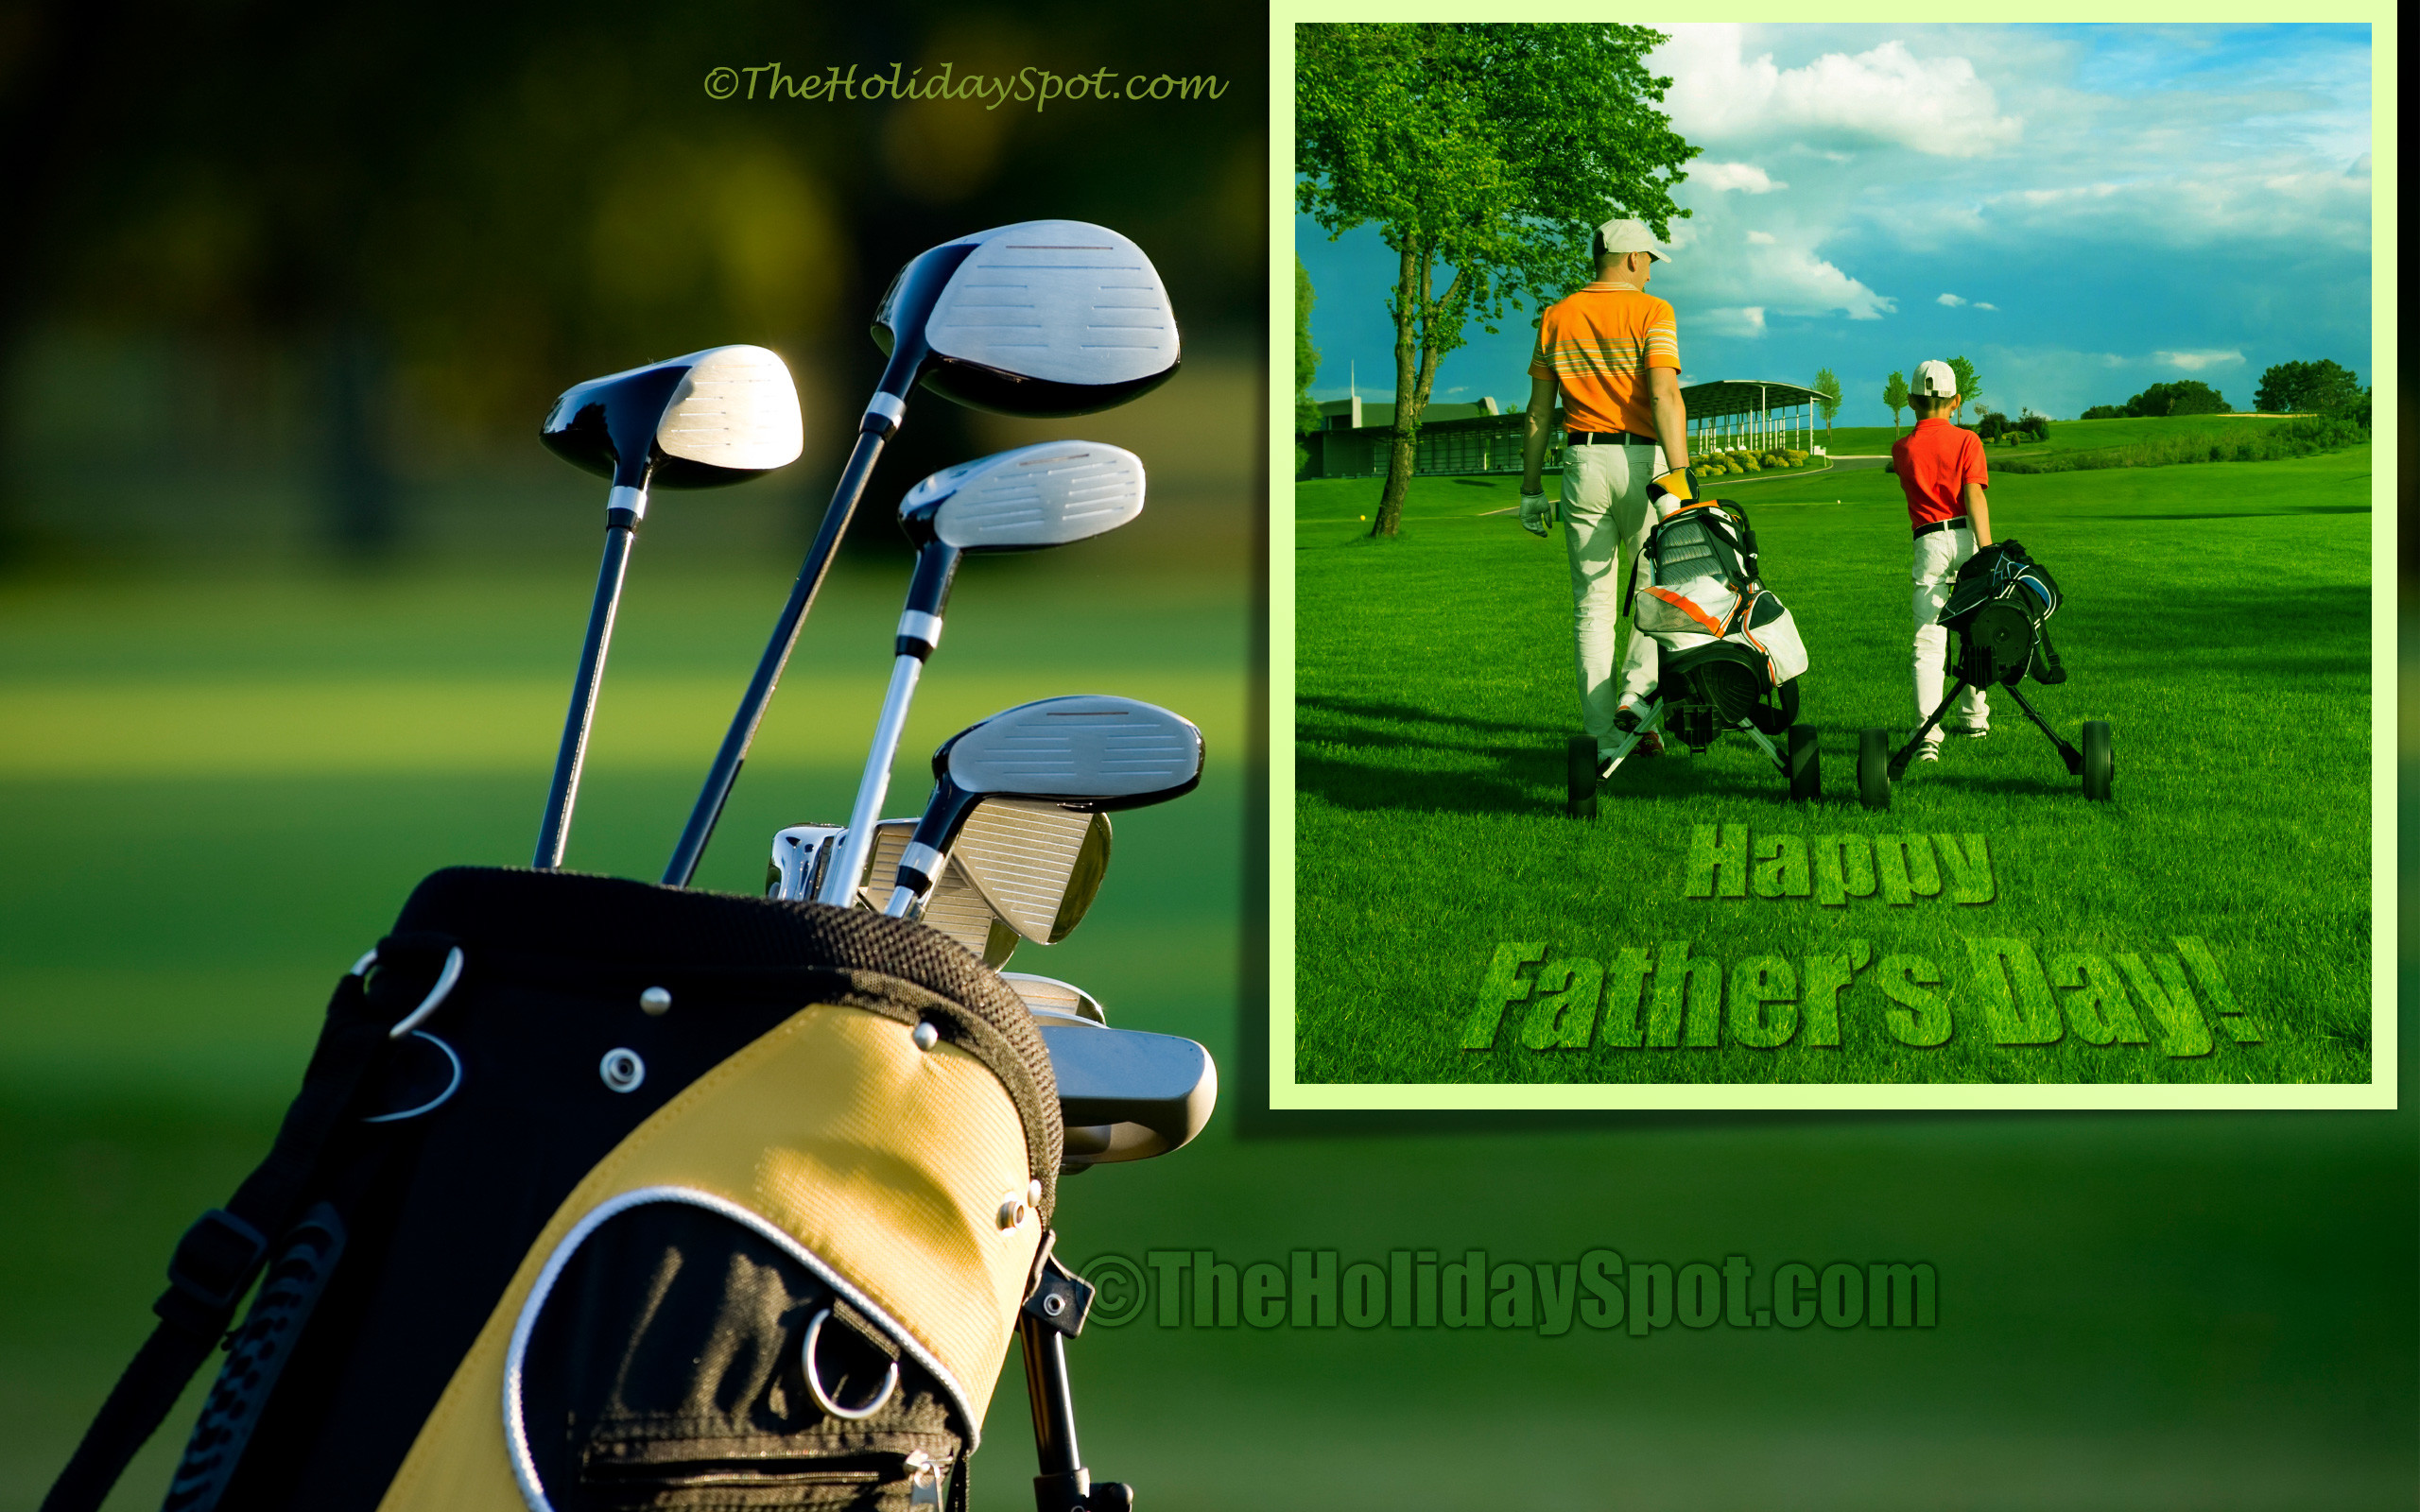 Happy Father's Day Wallpaper themed with Golf new wallpaper